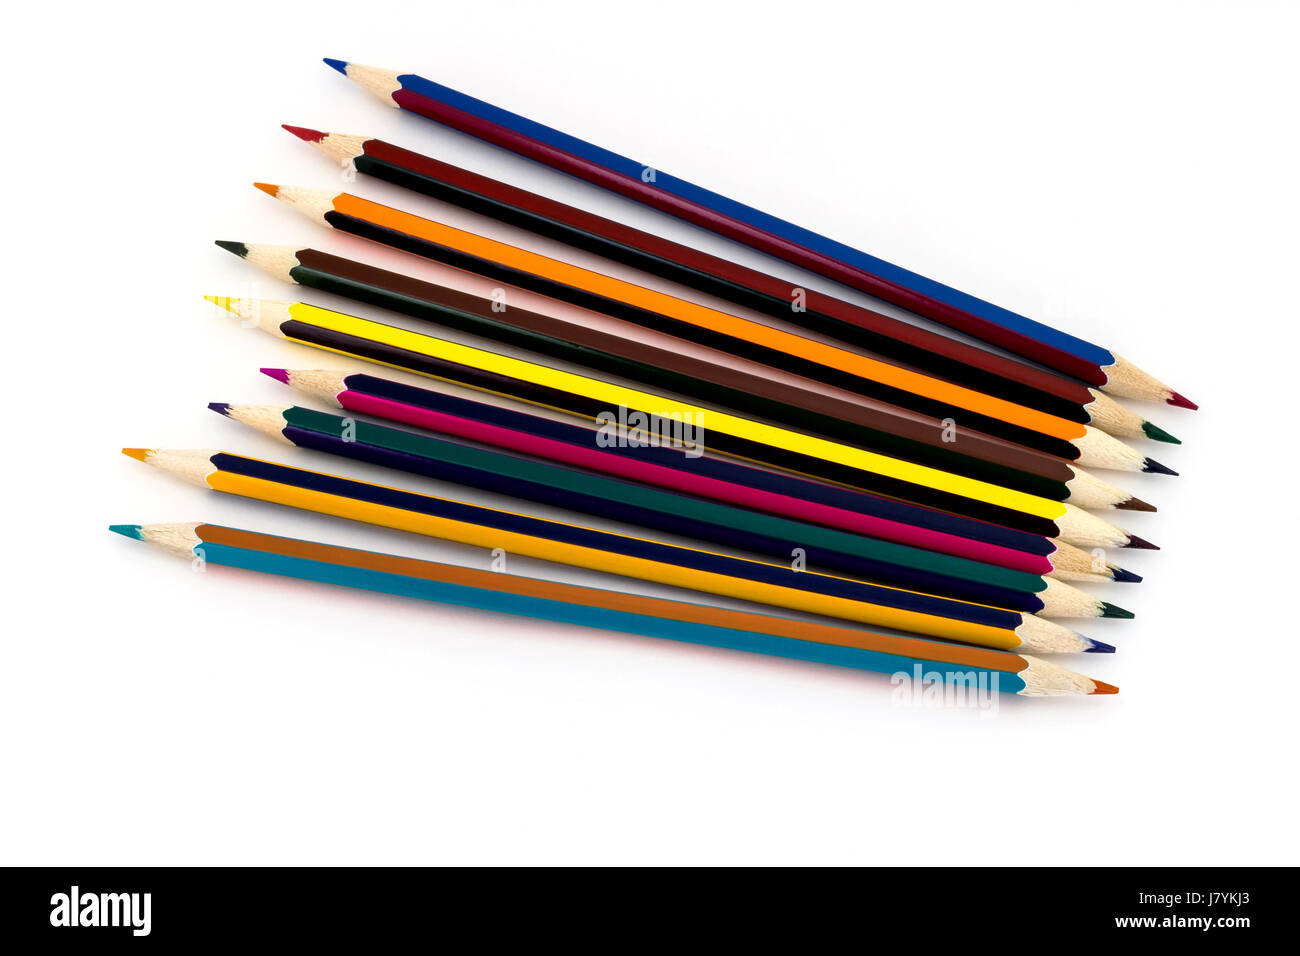 Multicolored pencils isolated on white background - Stock Image